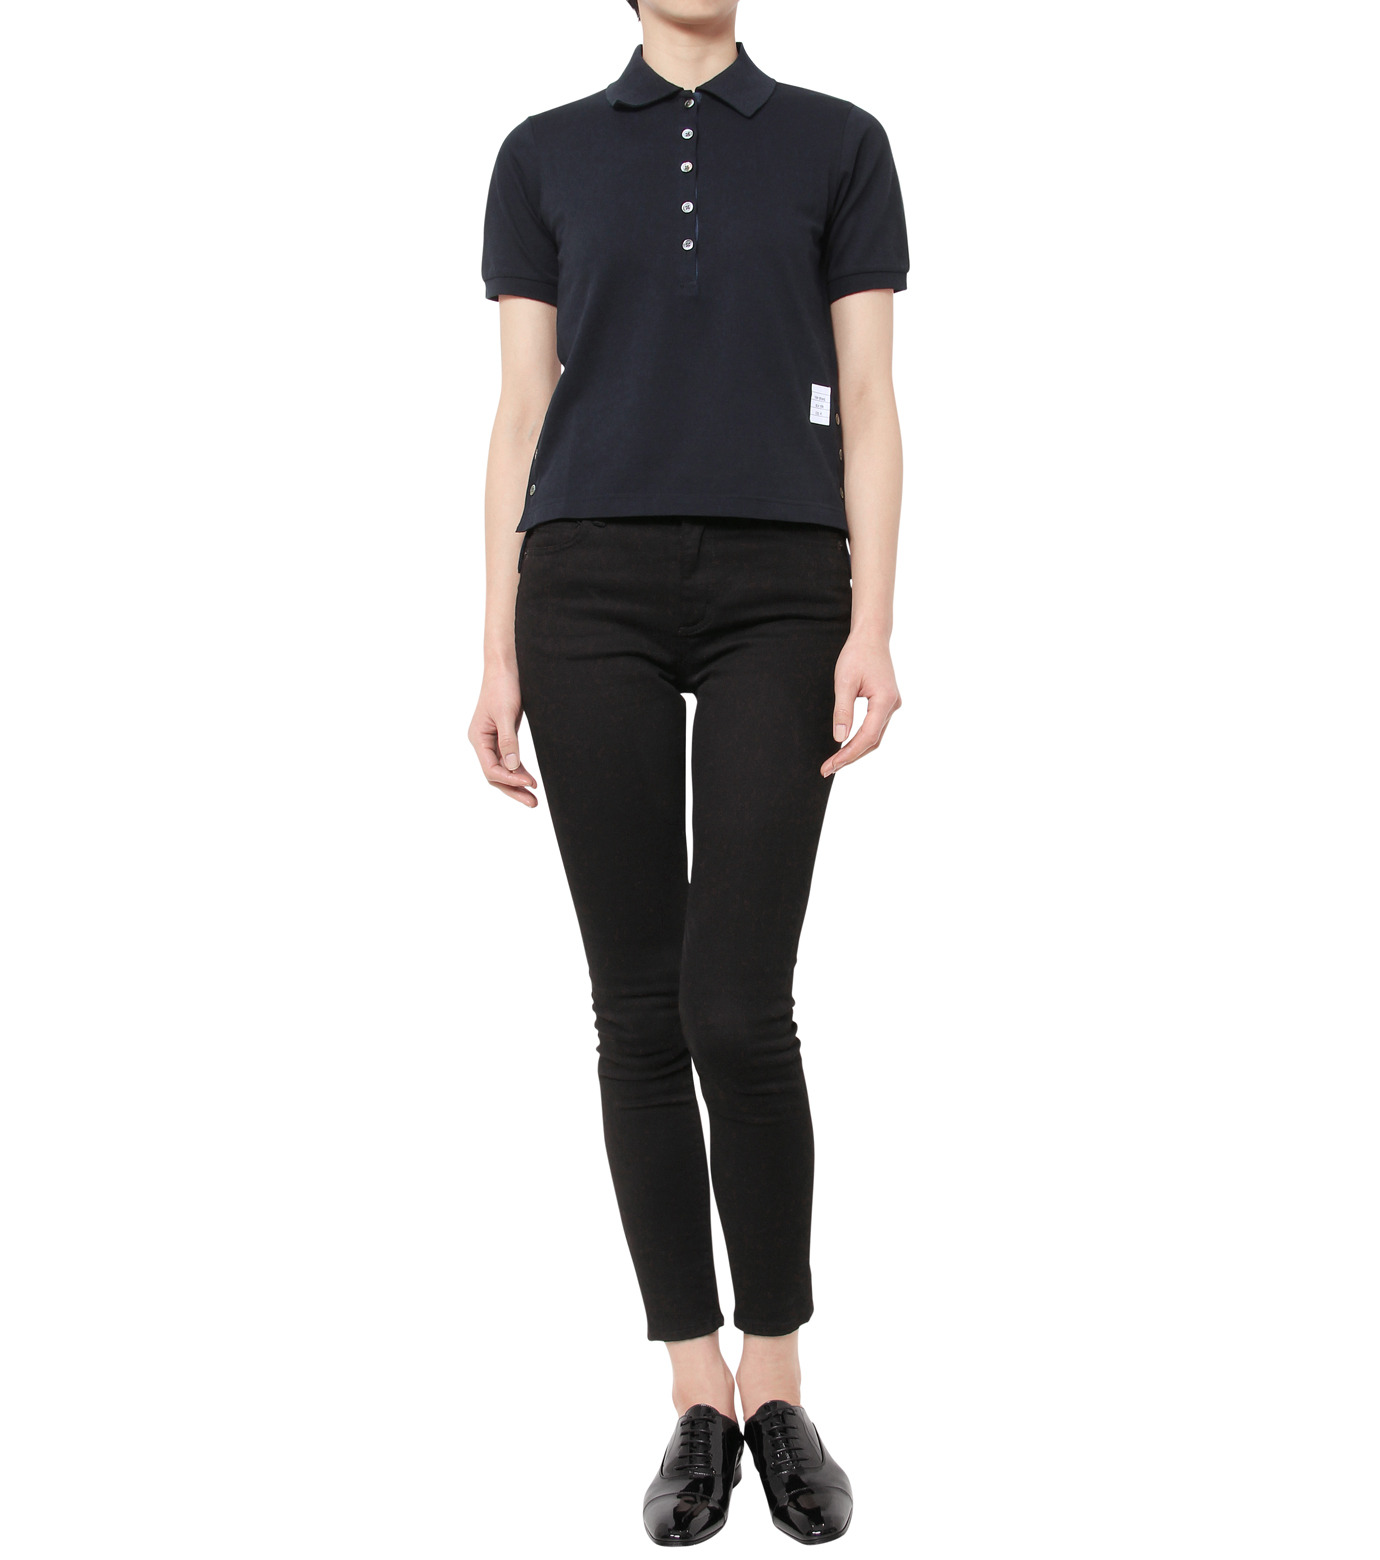 Thom Browne(トムブラウン)のPolo Shirt-NAVY(カットソー/cut and sewn)-FJP002A00047-93 拡大詳細画像3